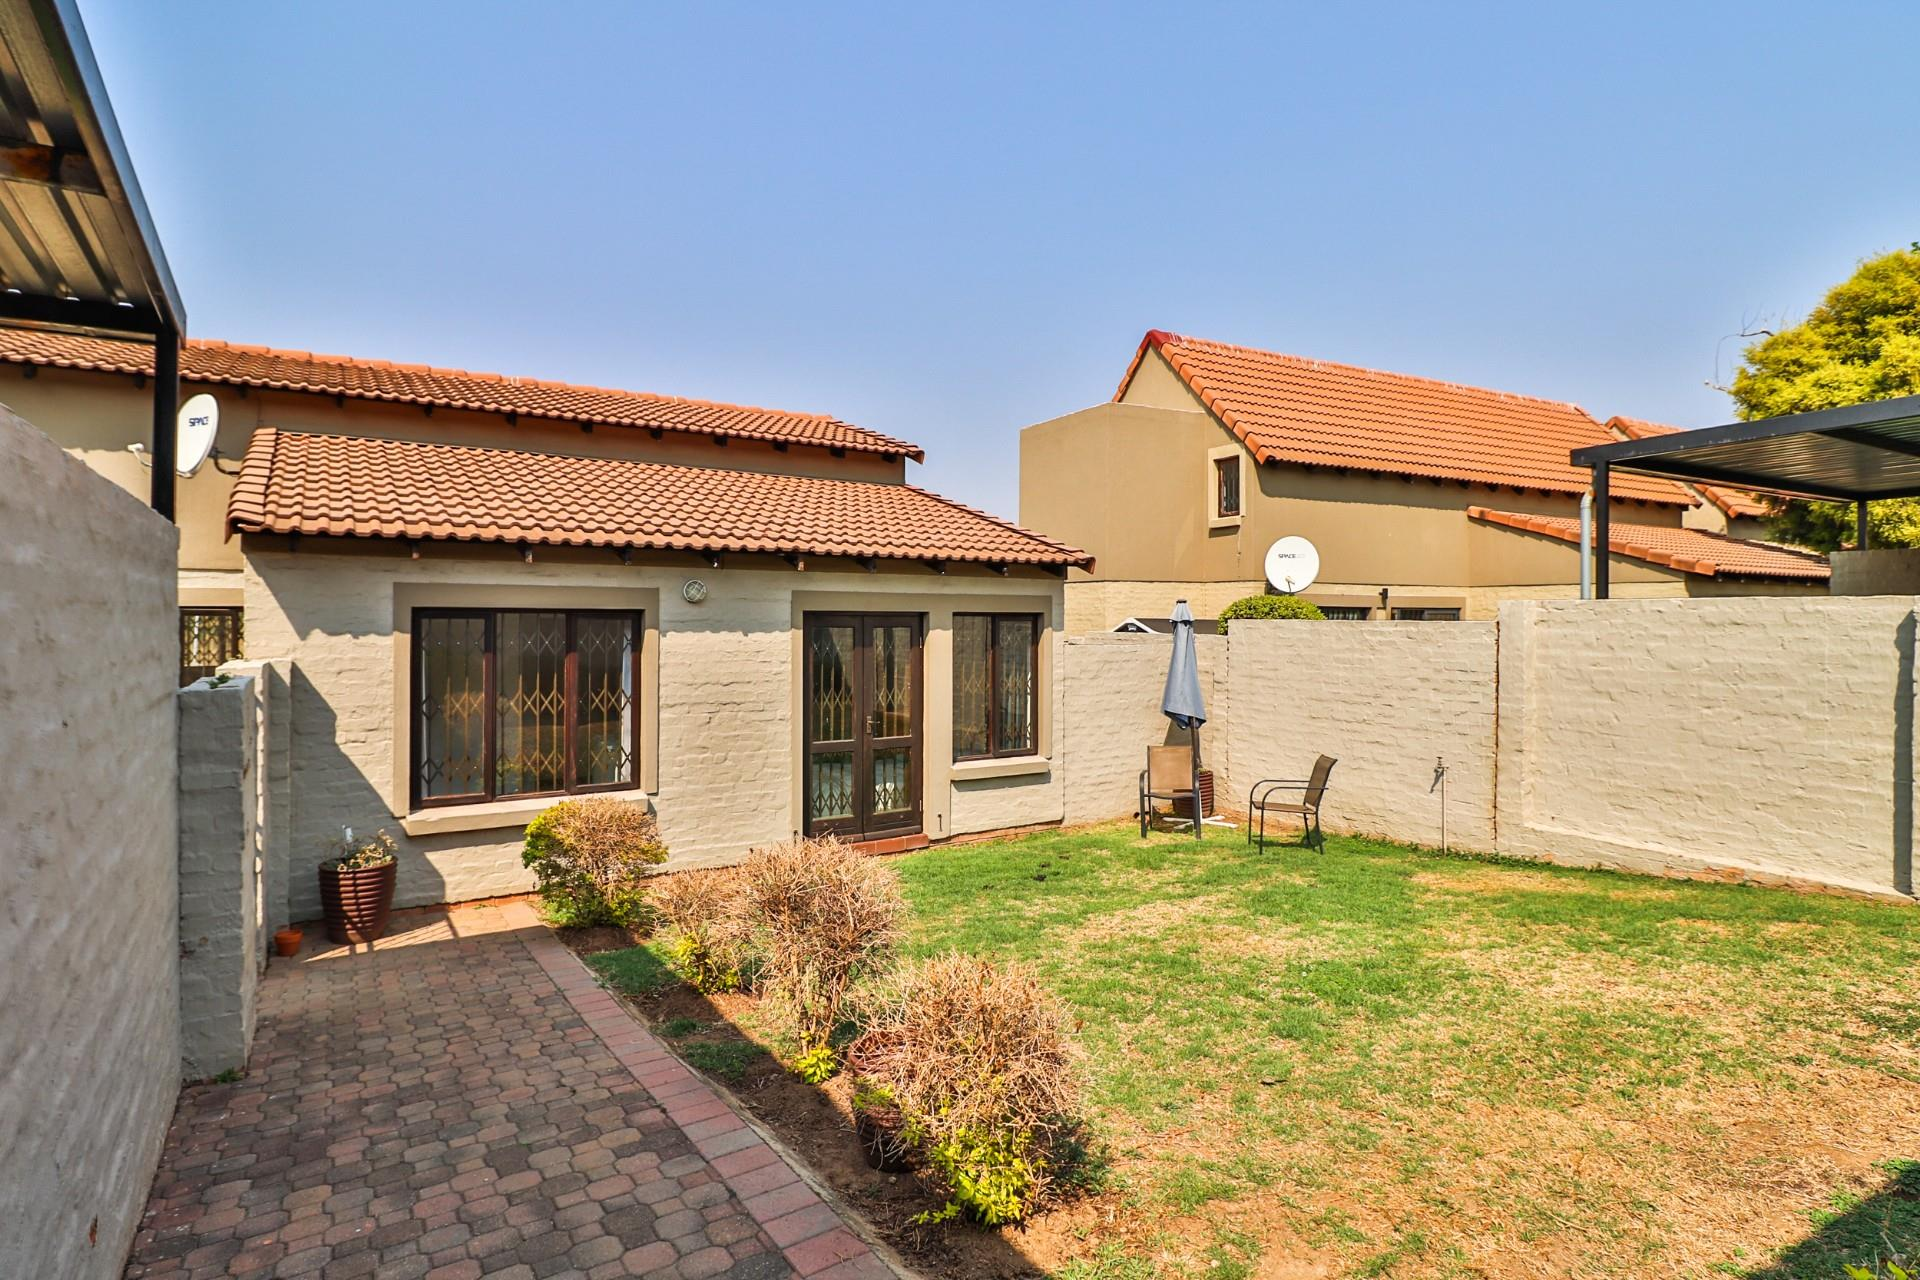 3 Bedroom House For Sale in Northwold